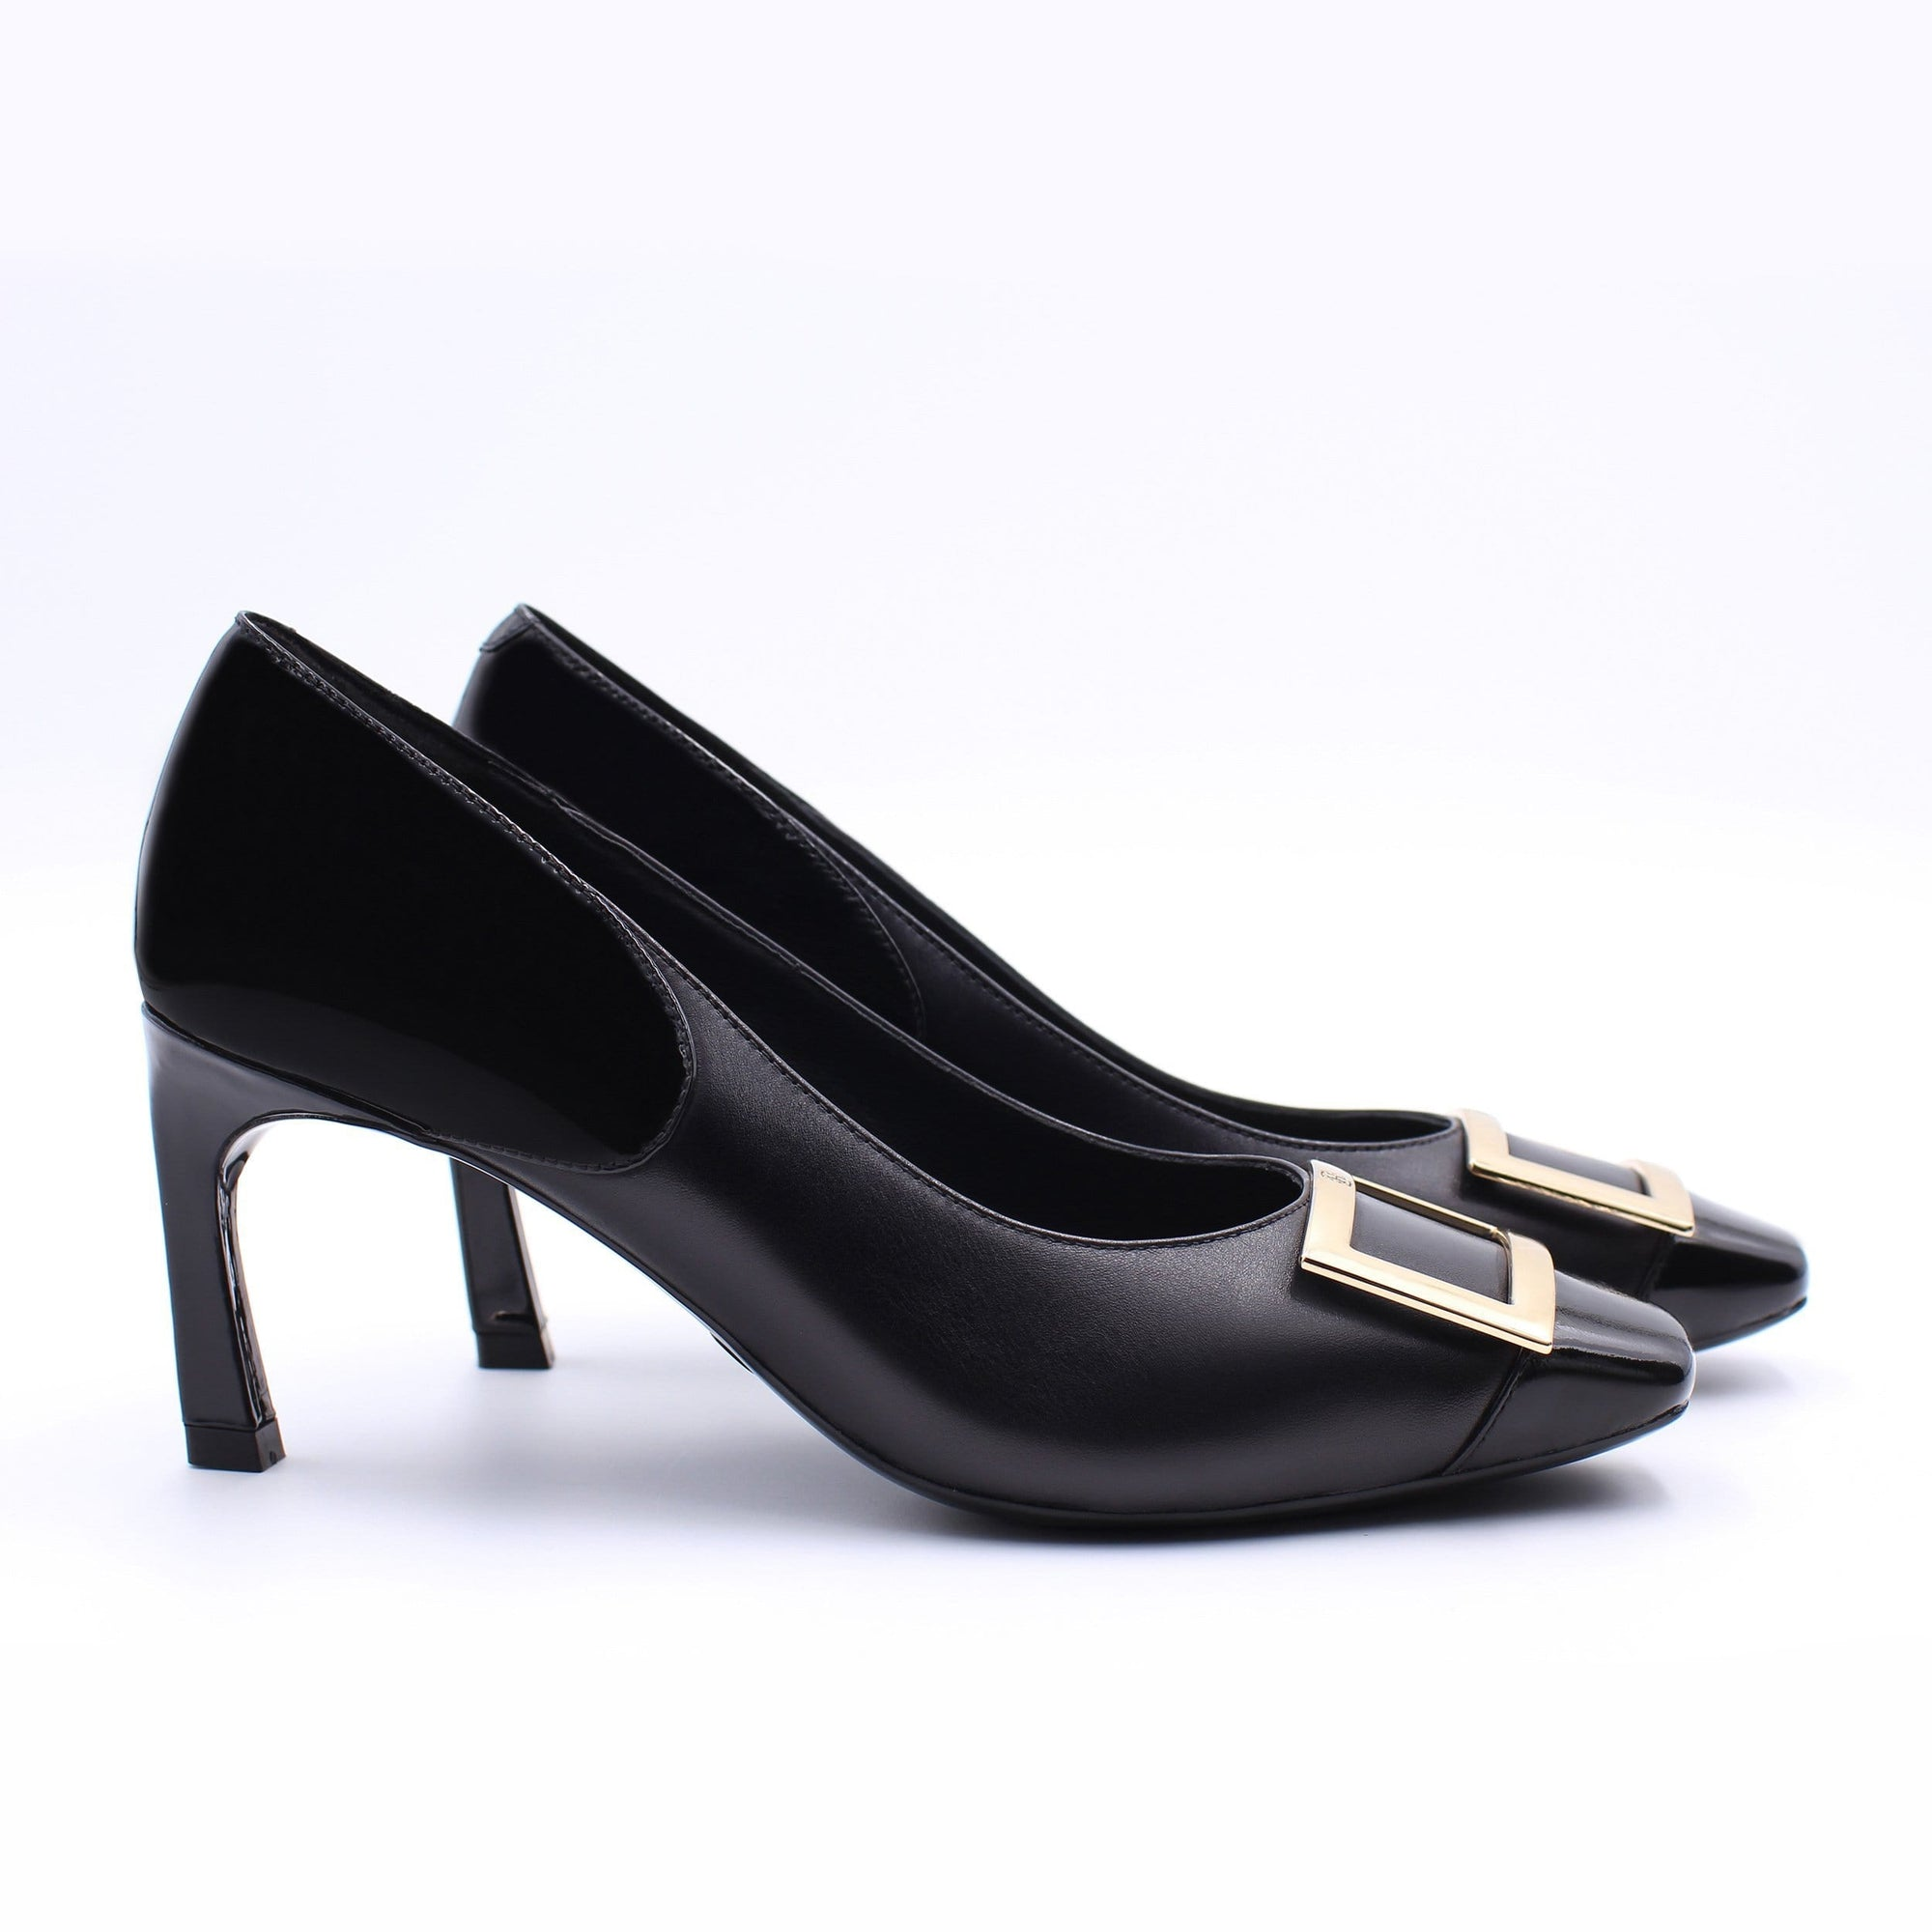 HOPE ROSA Pumps GRACE PUMP - BLACK/BLACK PATENT